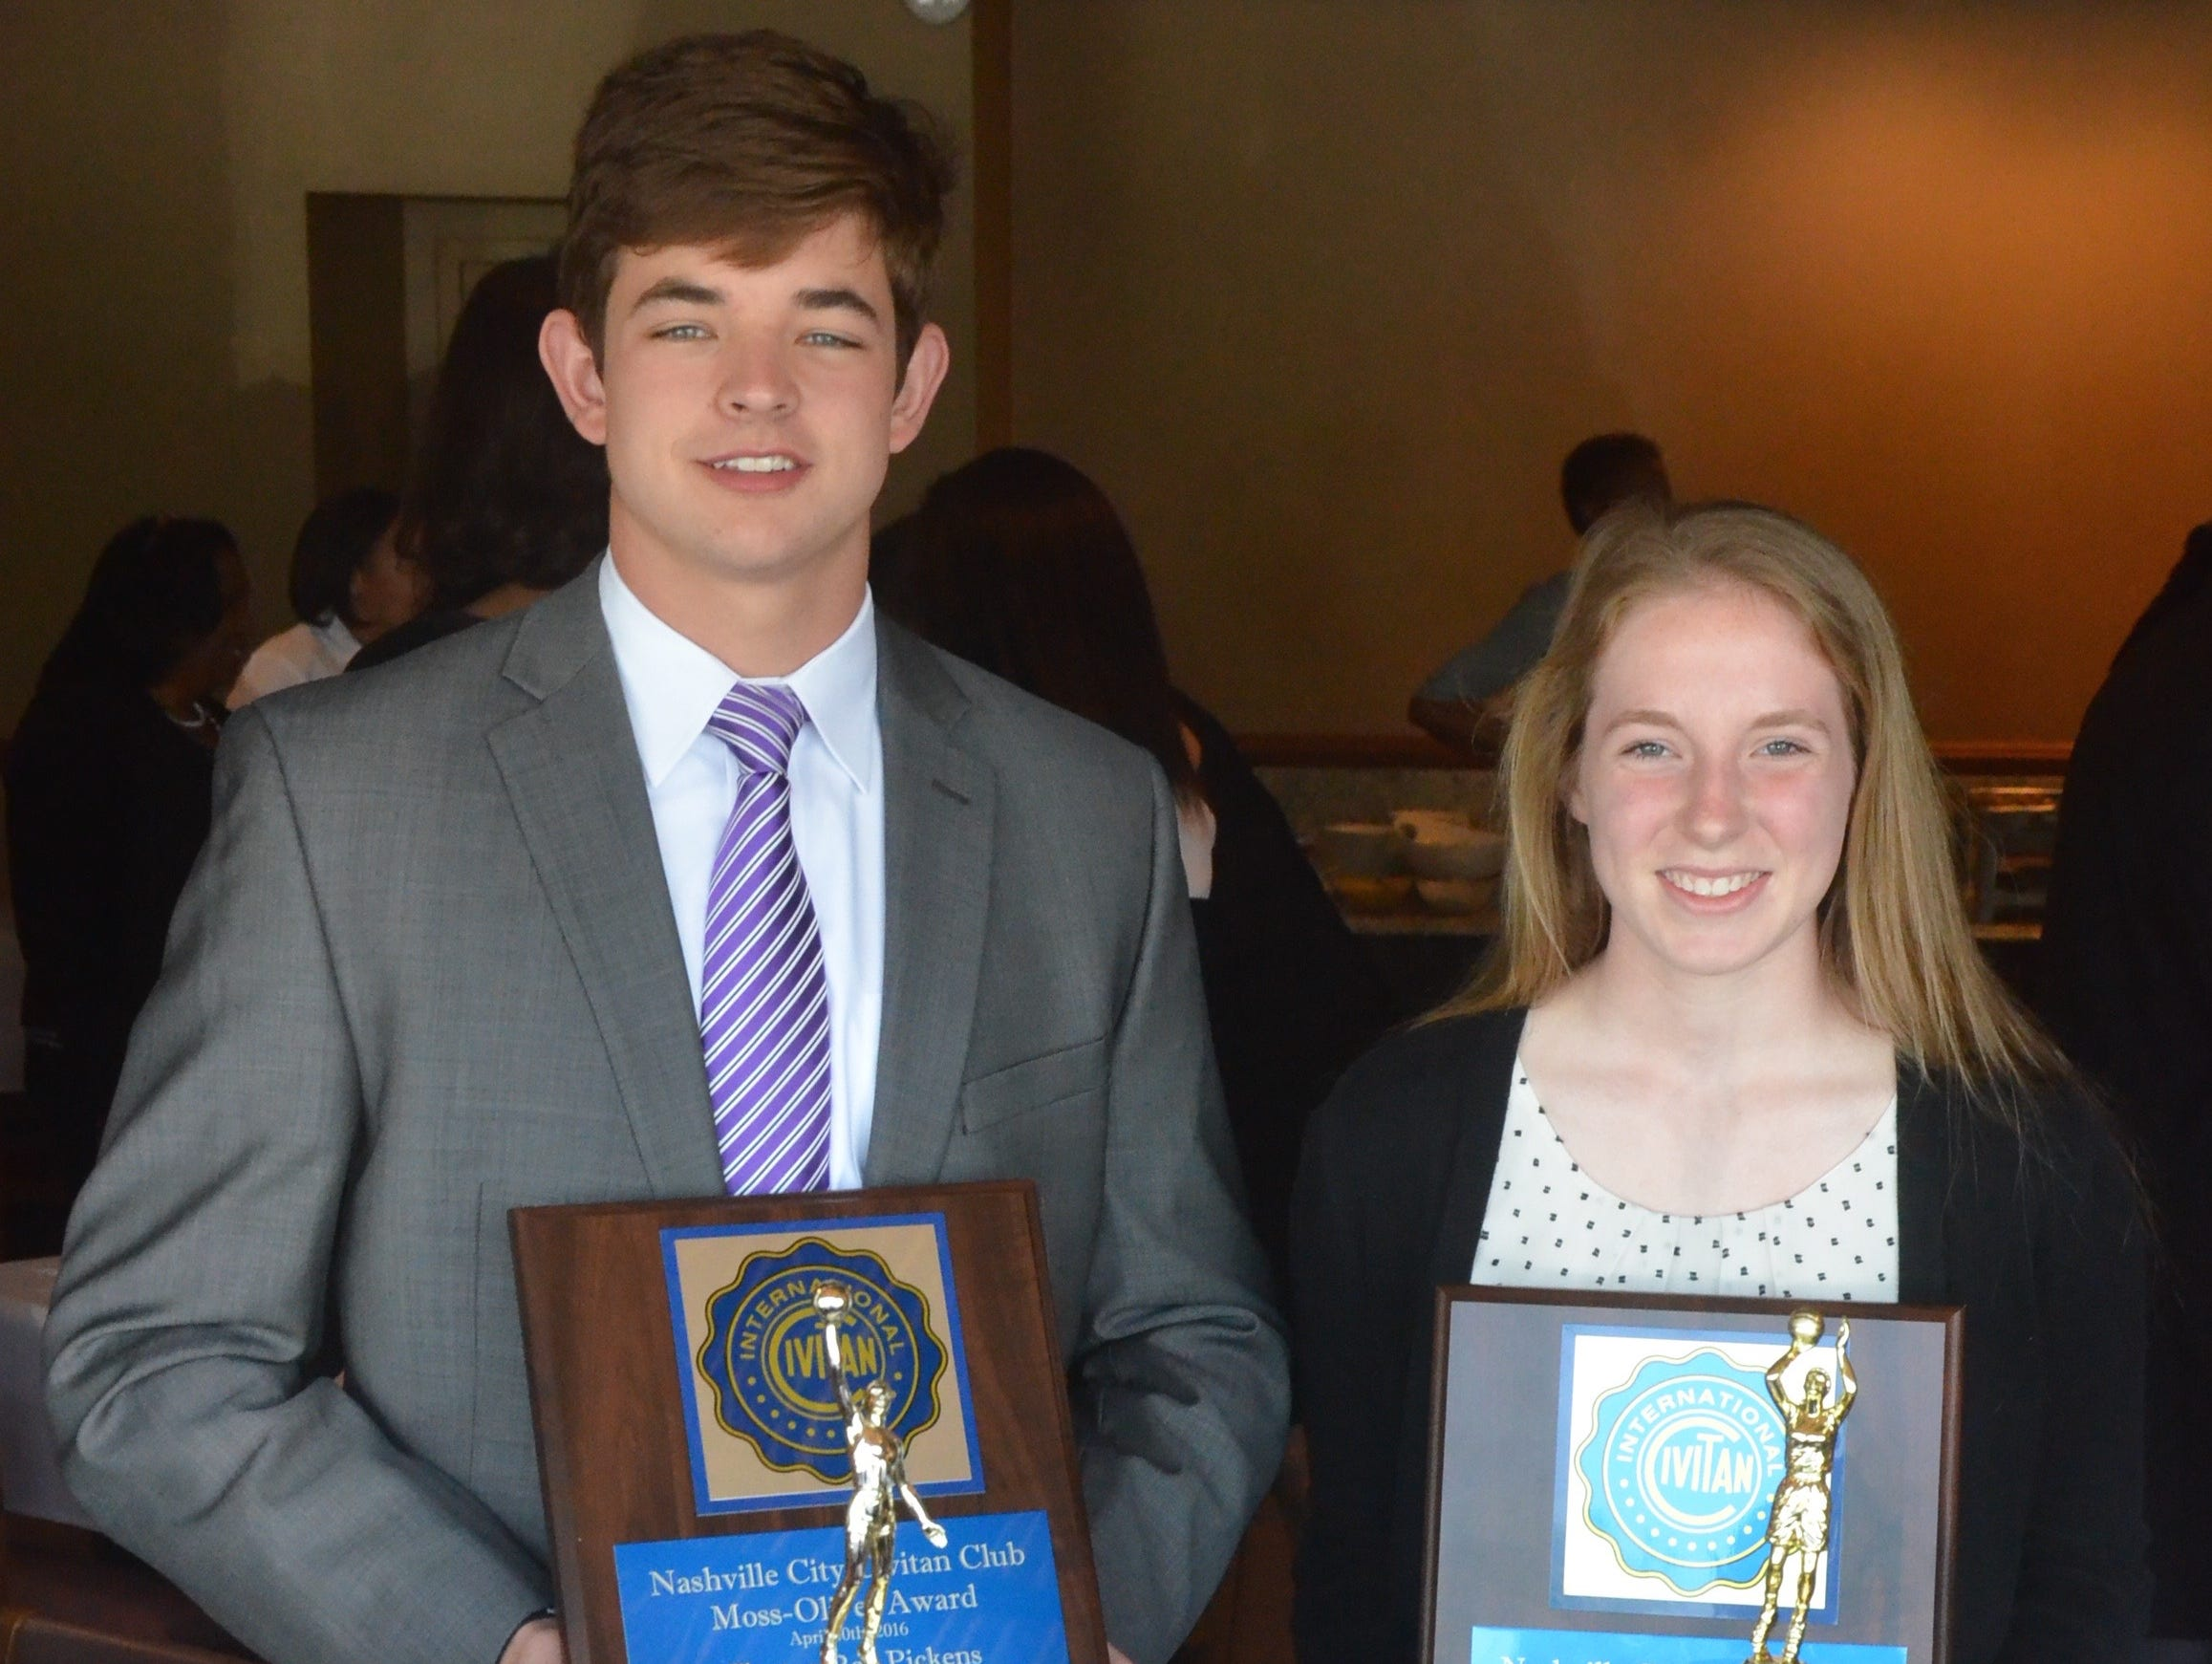 Lipscomb Academy's Clayton Pickens (left) and Ezell-Harding's Shannon Beaty each received Moss/Oliver awards on Wednesday.